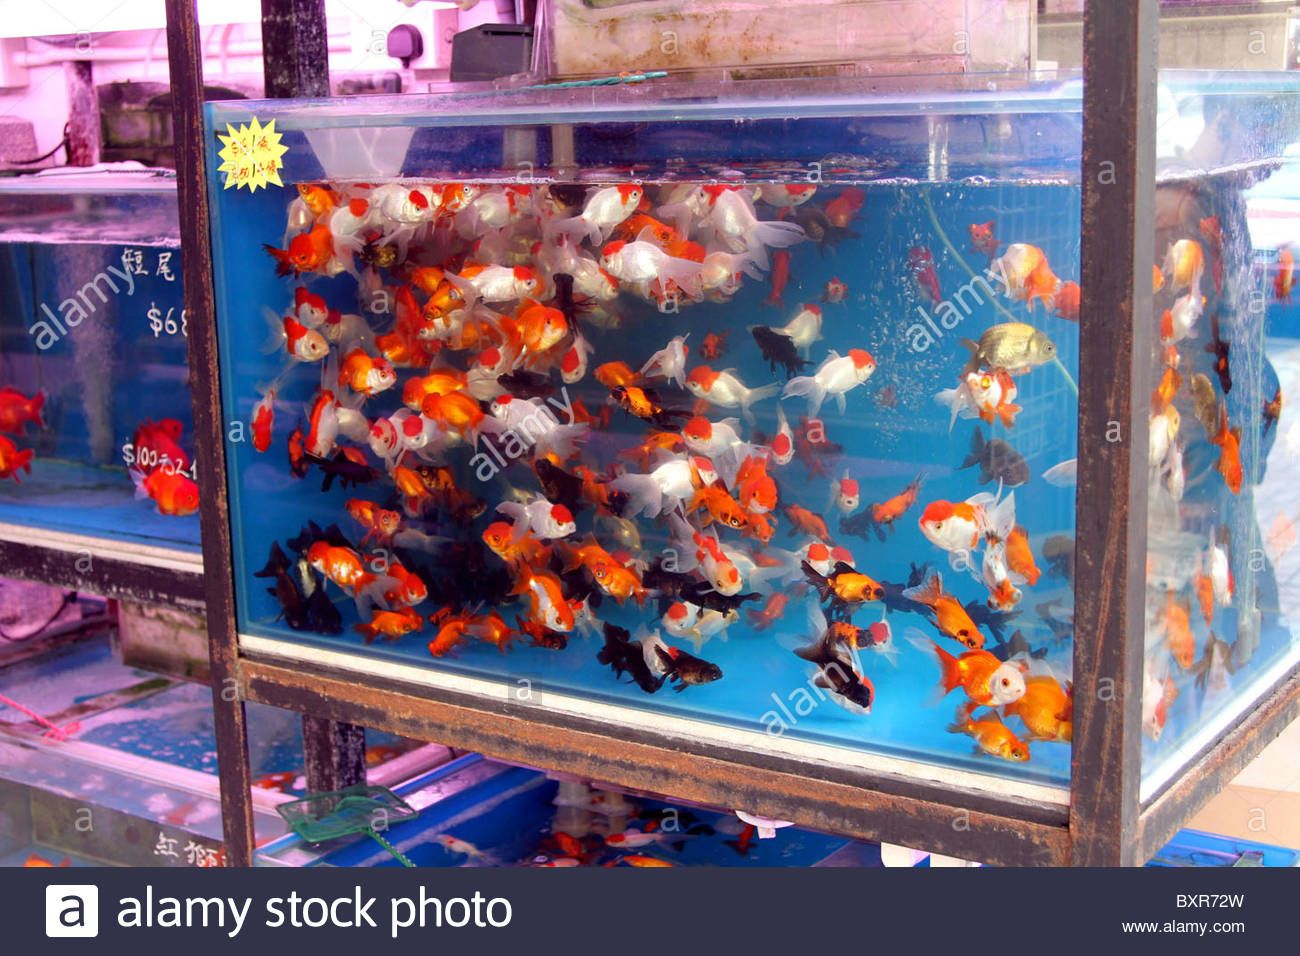 Aquarium Pet Shop Selling Goldfish In Plastic Bags In The Fish Market Area On Tung Choi Street In Kowloon Hong Kong China Pet Shop Goldfish Pets